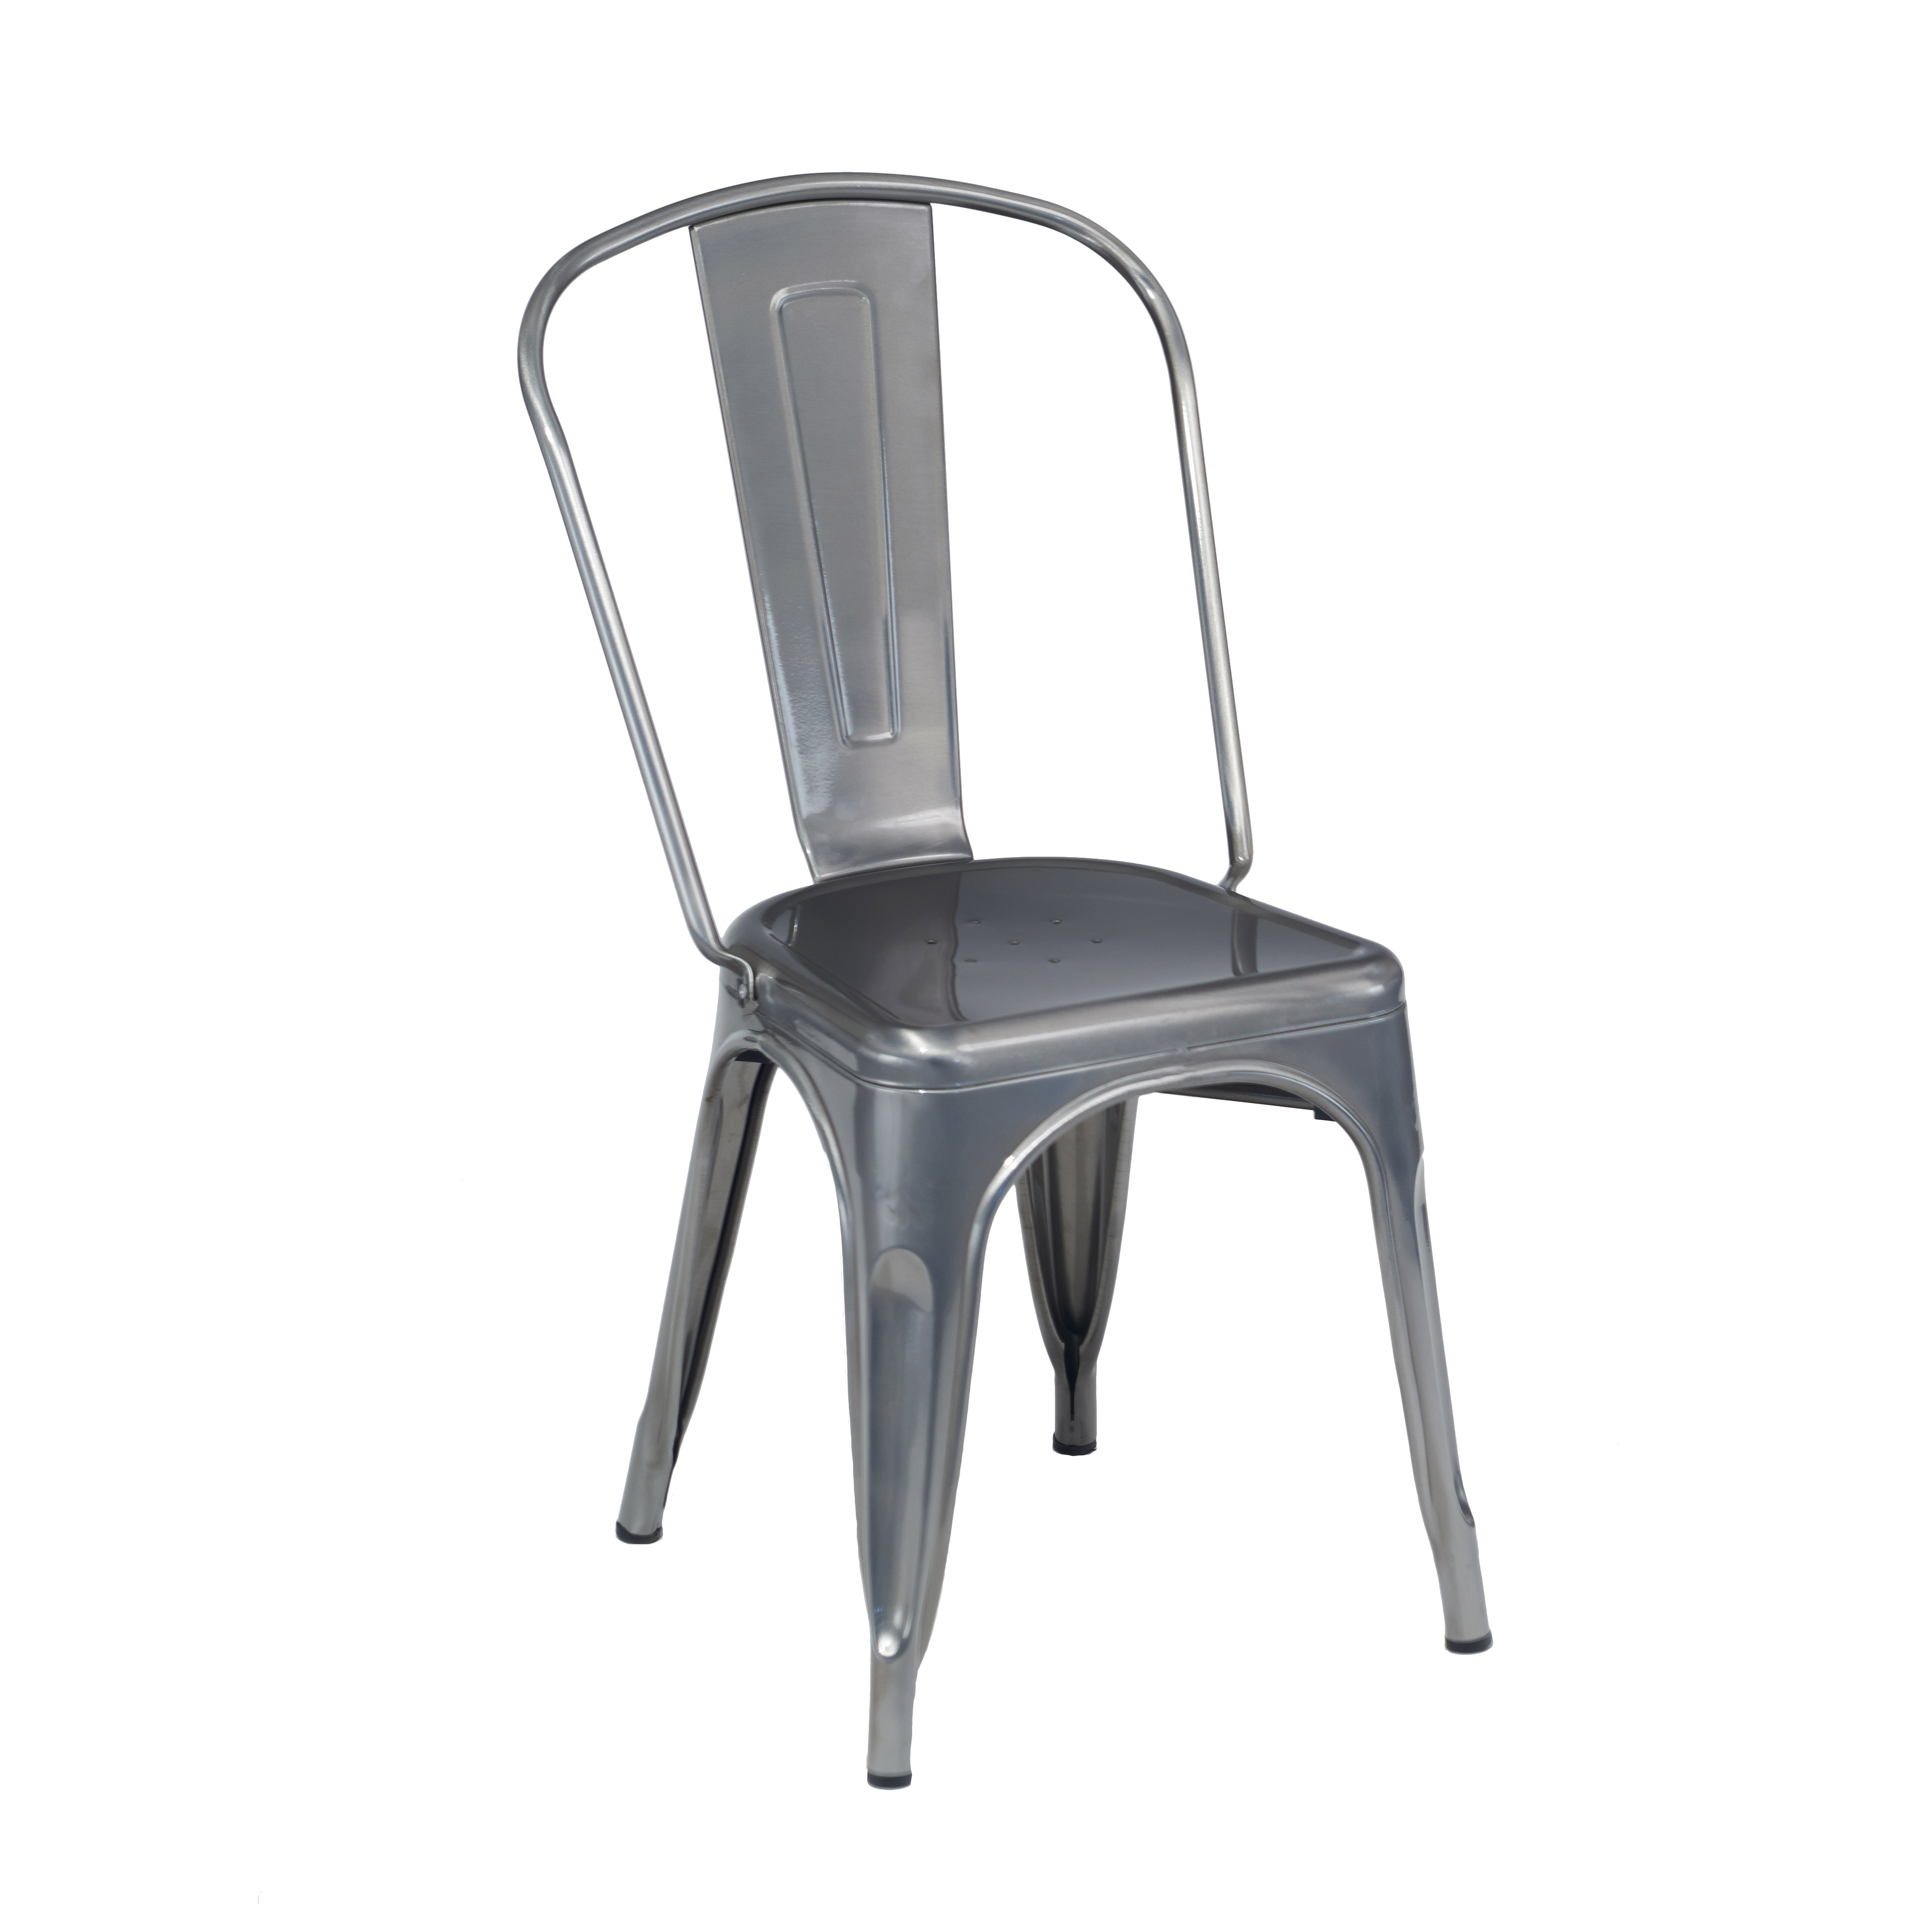 G & A Commercial Seating 530-WS chair, side, indoor